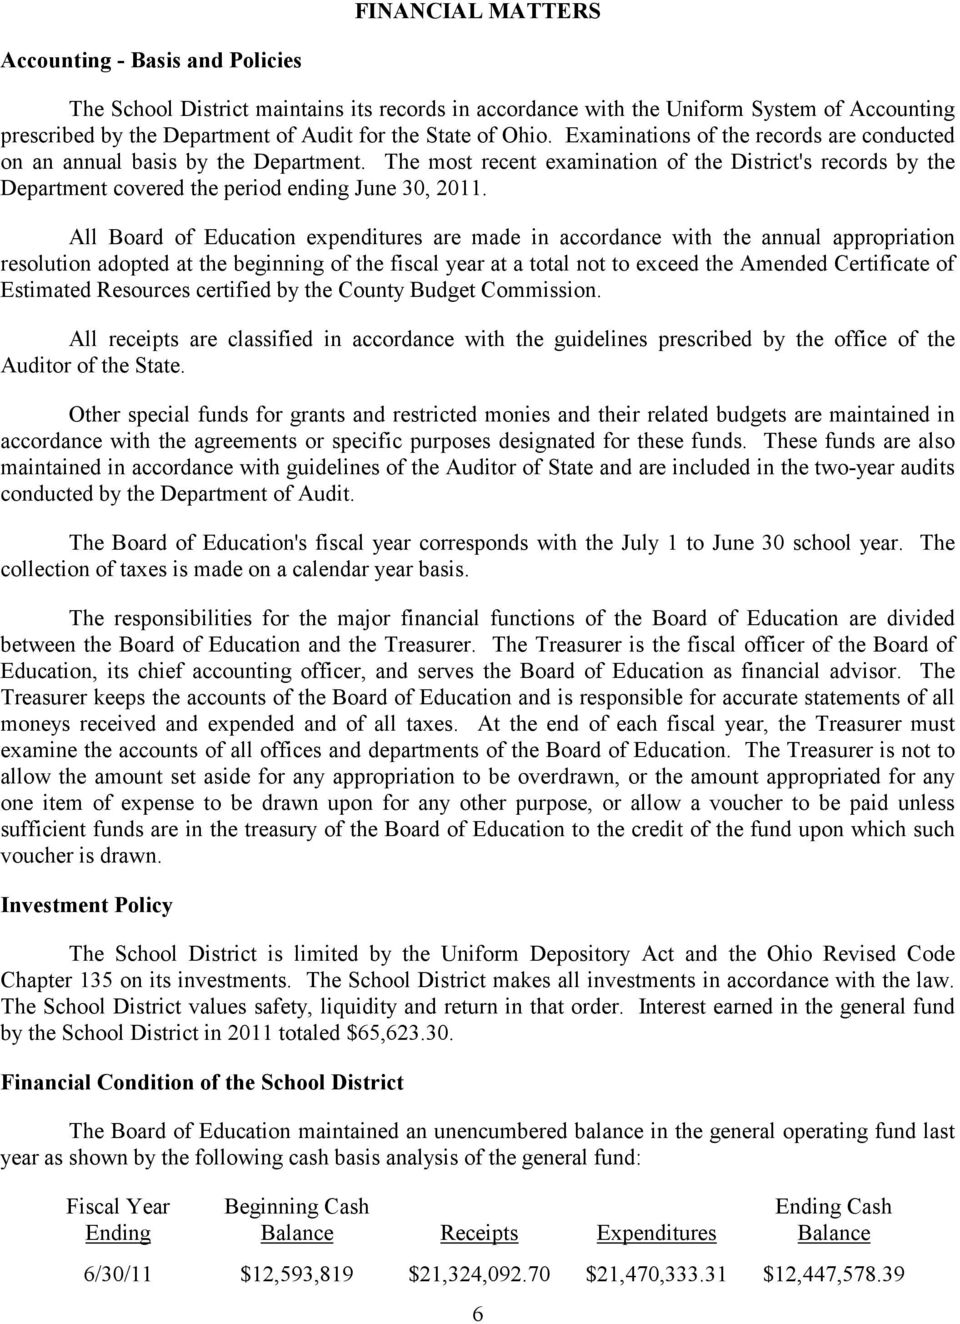 All Board of Education expenditures are made in accordance with the annual appropriation resolution adopted at the beginning of the fiscal year at a total not to exceed the Amended Certificate of